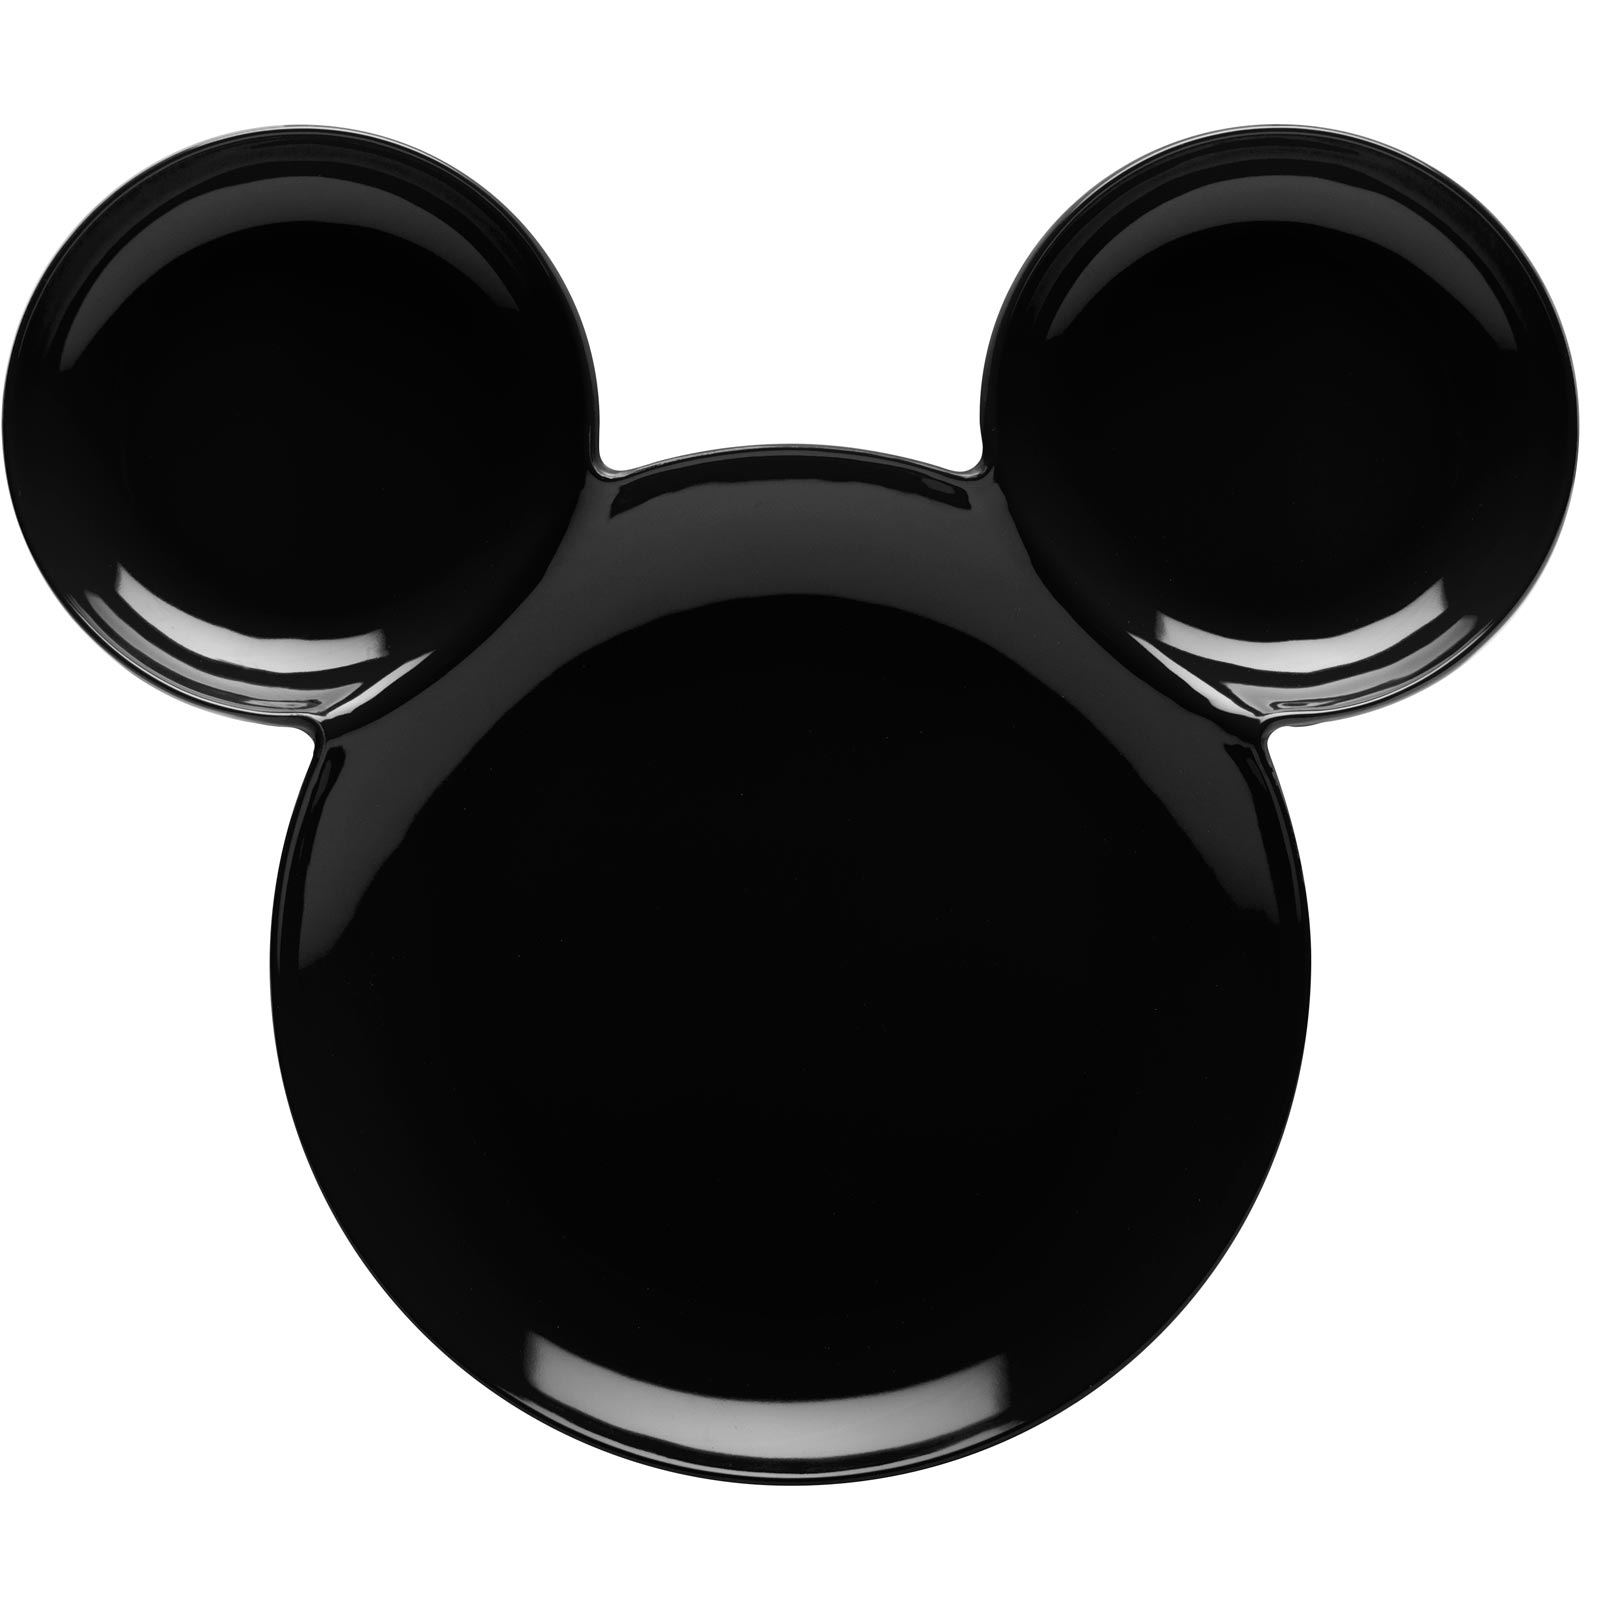 mickey-mouse-head-shape-black-mmlu-0351 black zakdesigns jpgBlack Mickey Mouse Head Clipart